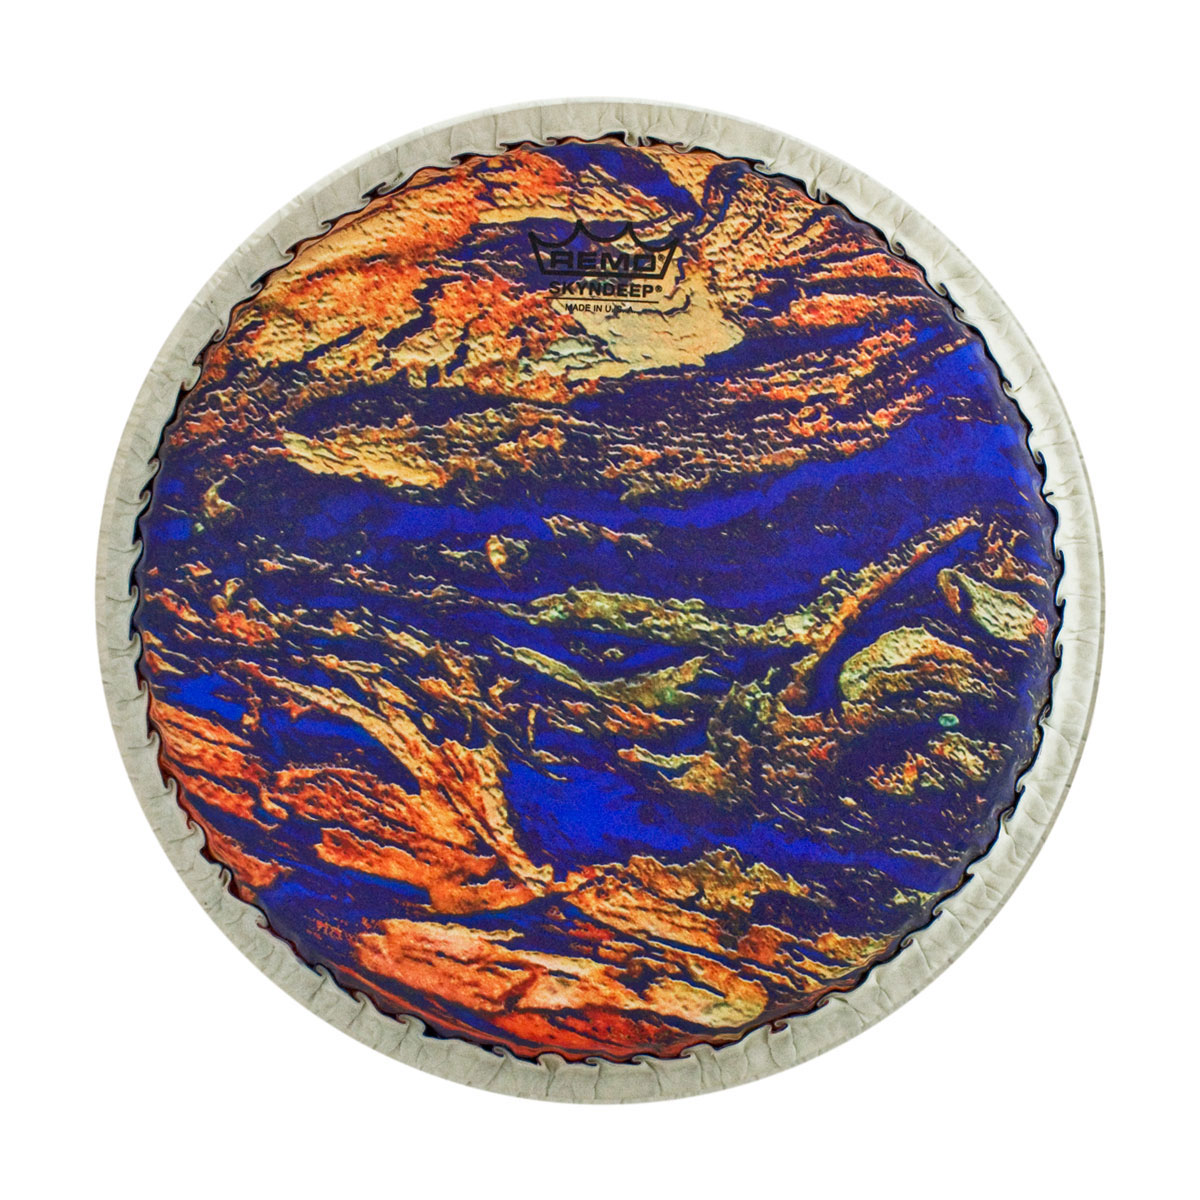 """Remo 12.5"""" Tucked Skyndeep Conga Drum Head with Molten Sea Graphic"""